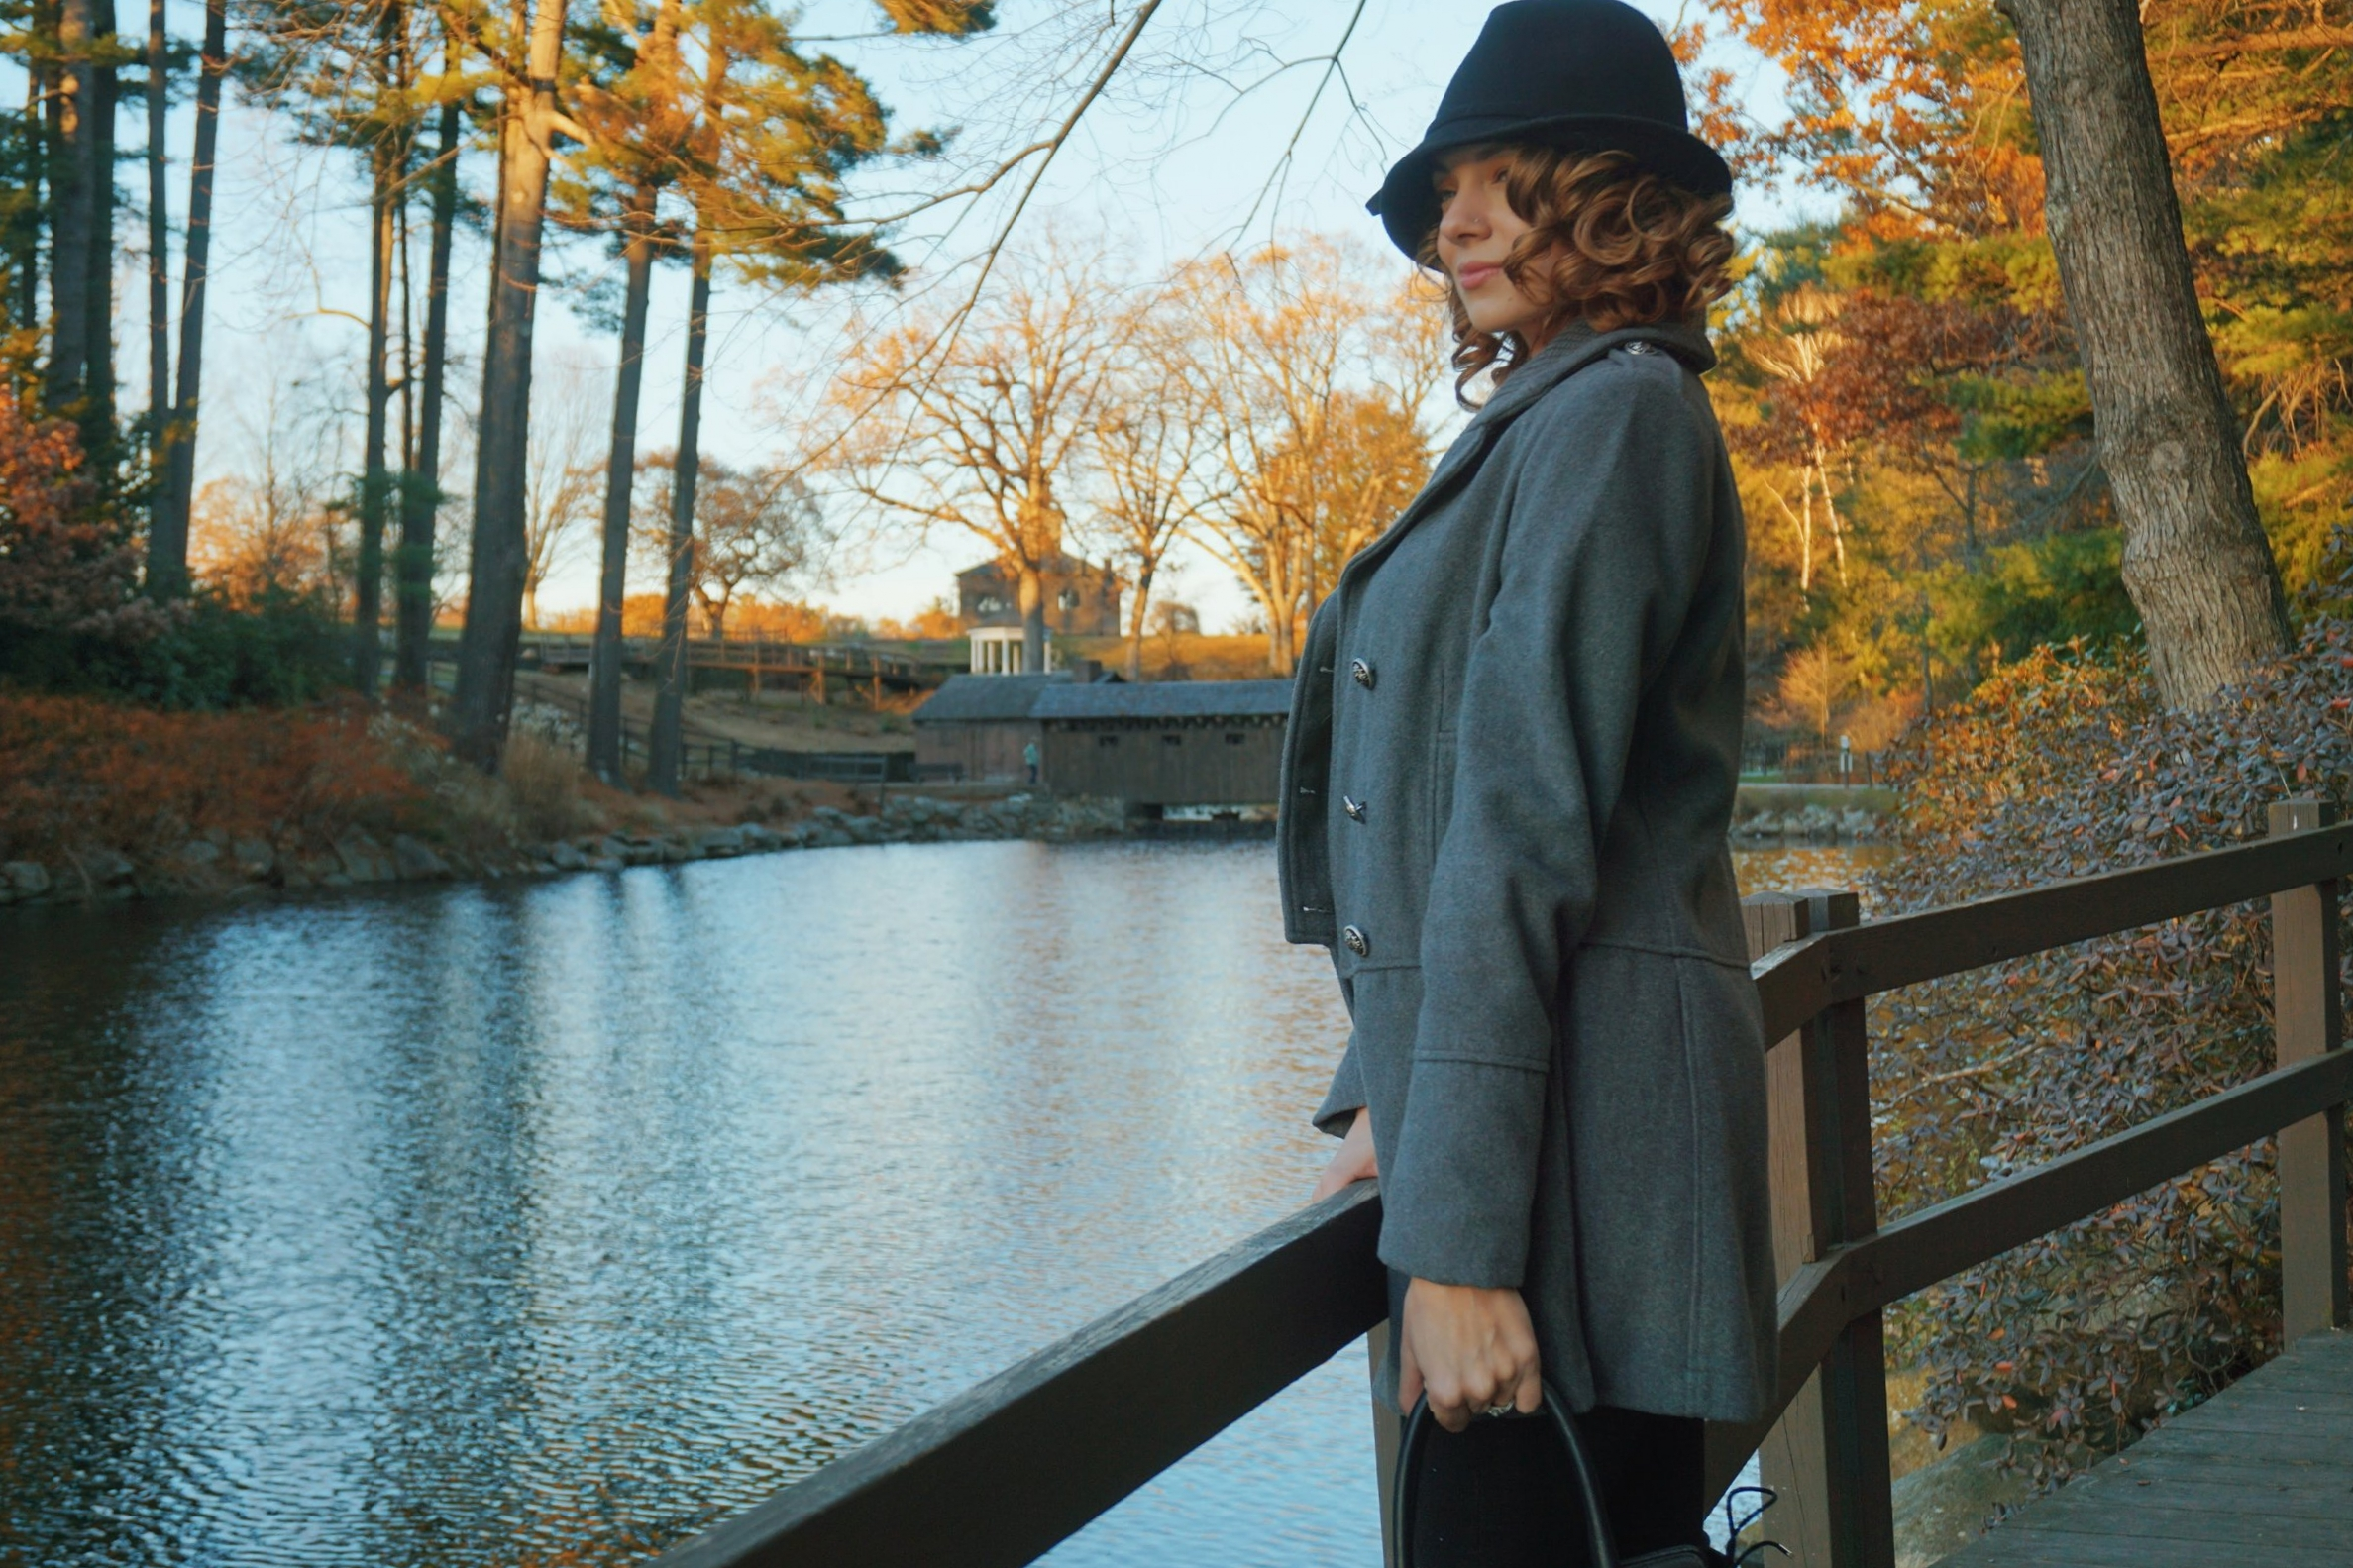 A beauty blogger with curly hair wearing a fall look : black hat, gray coat, black jeans, boots, and bag.